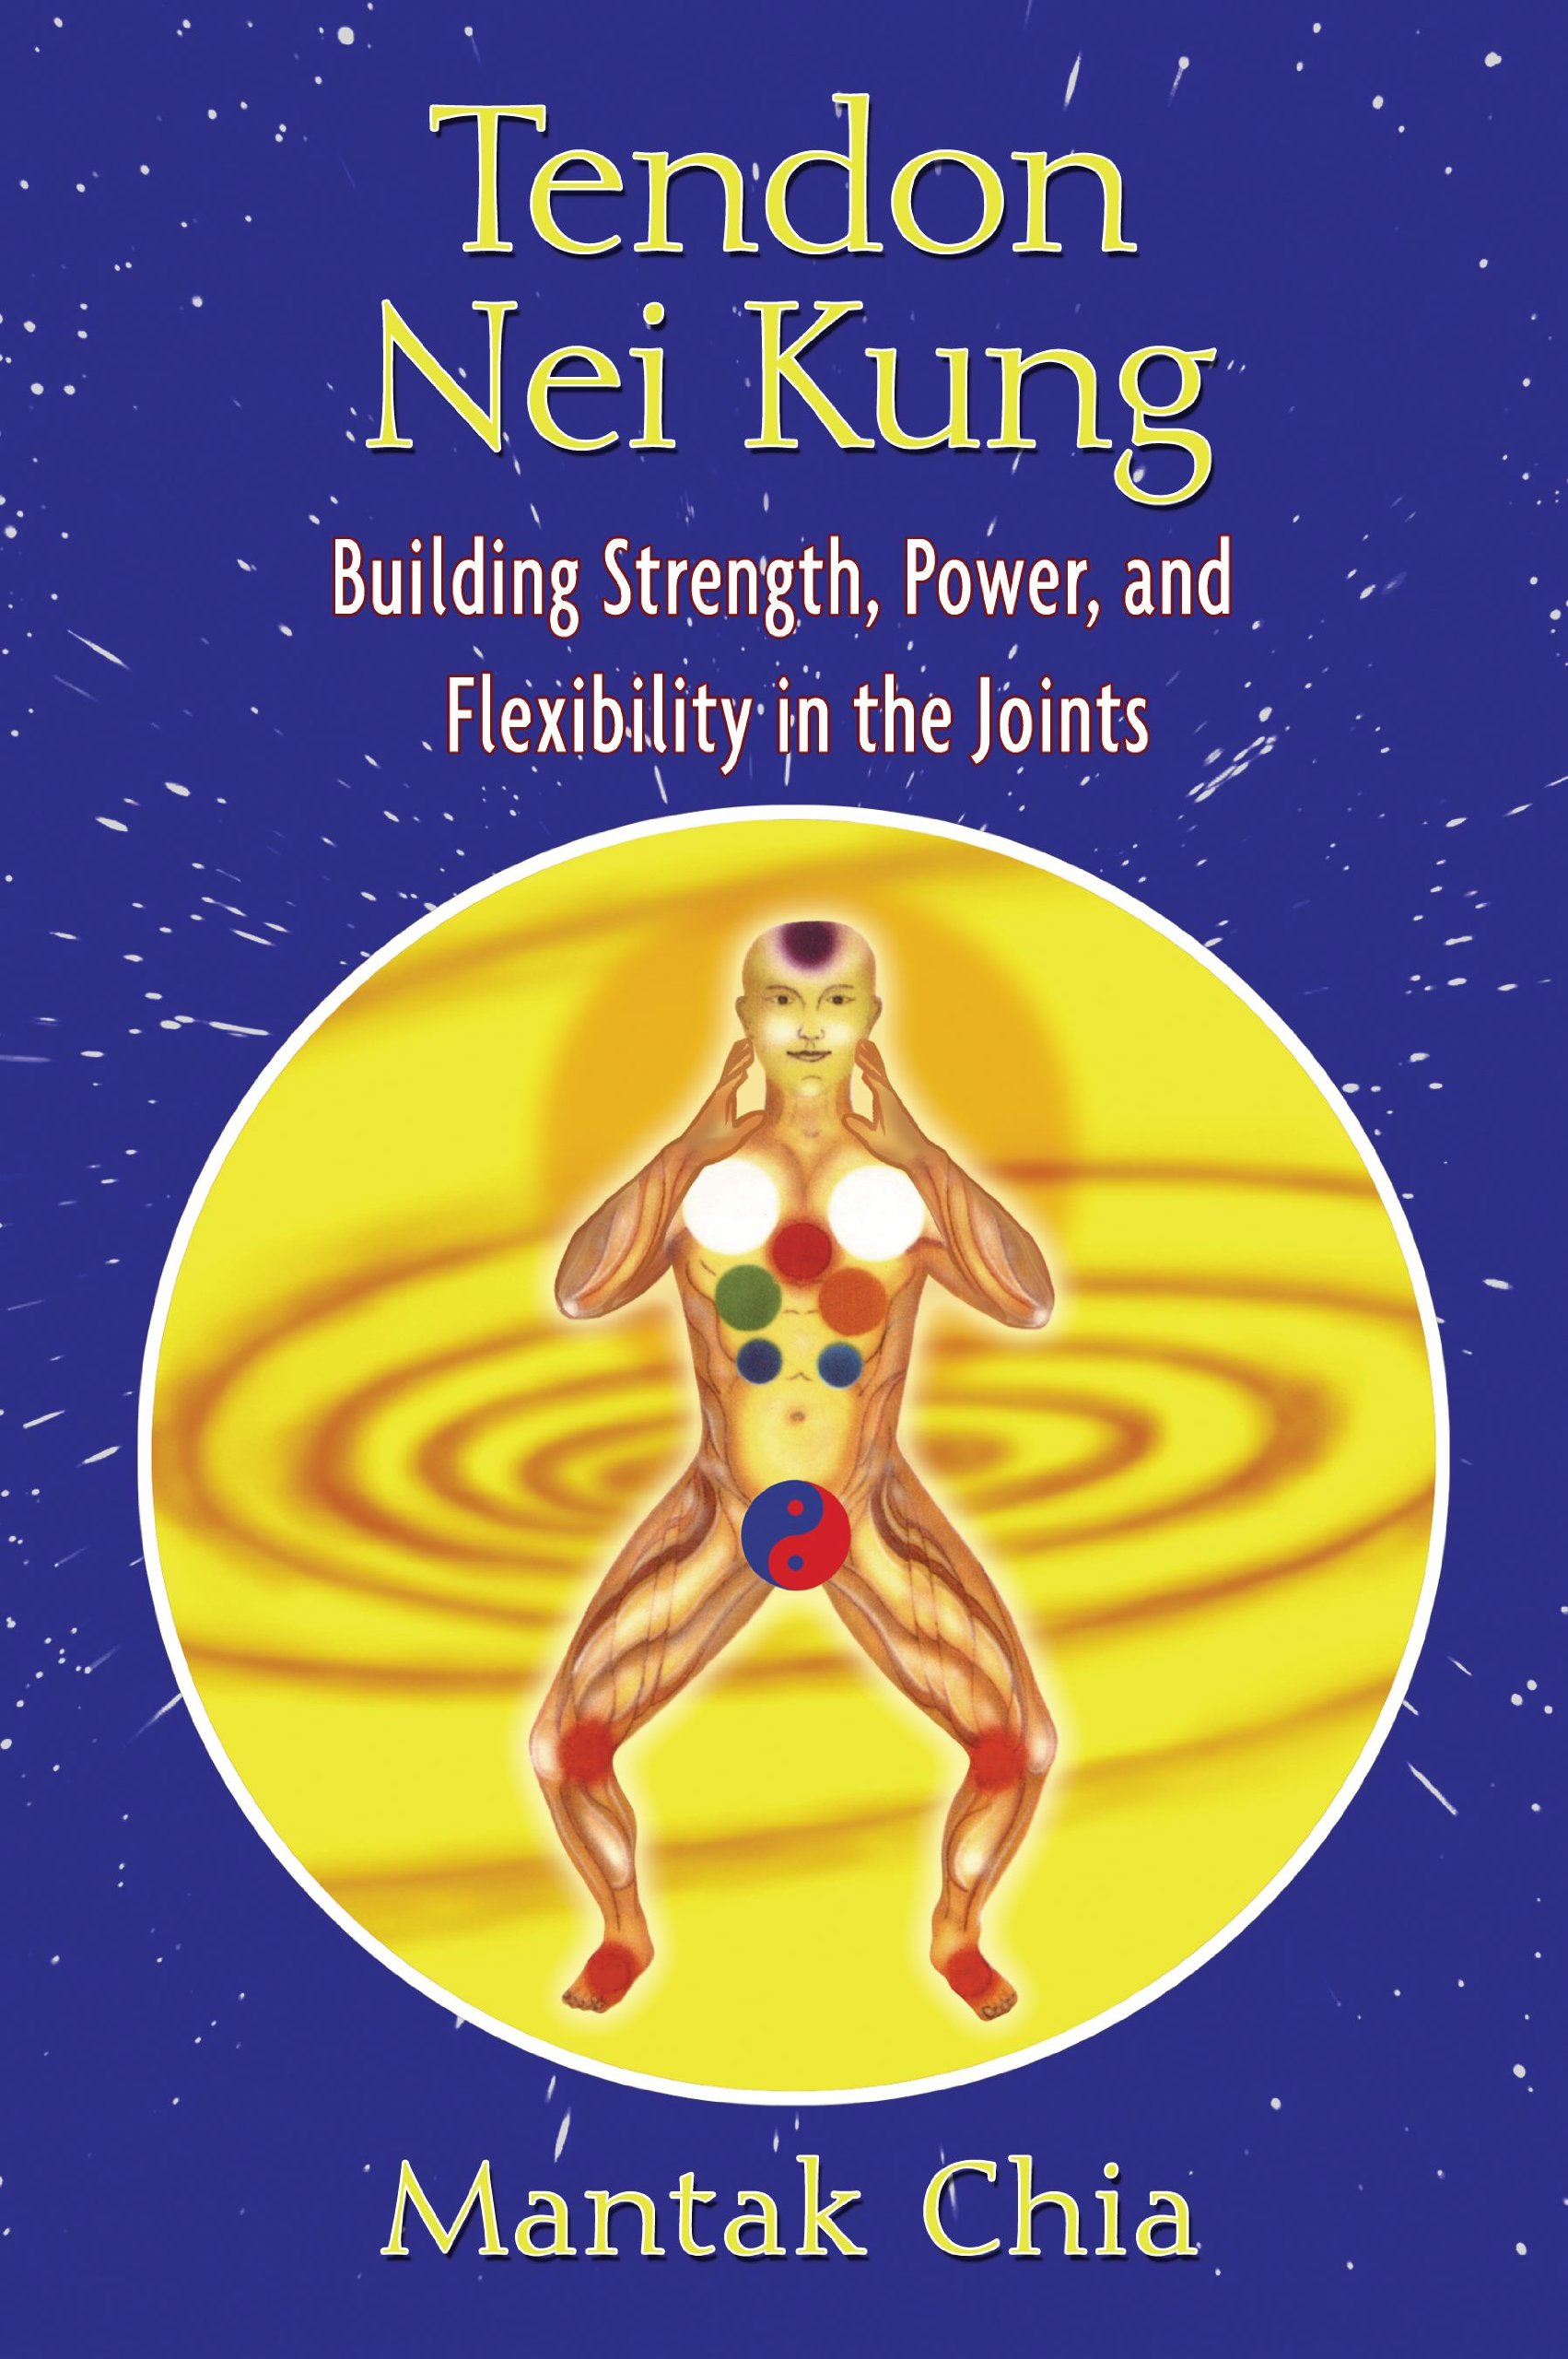 Tendon Nei Kung: Building Strength, Power, and